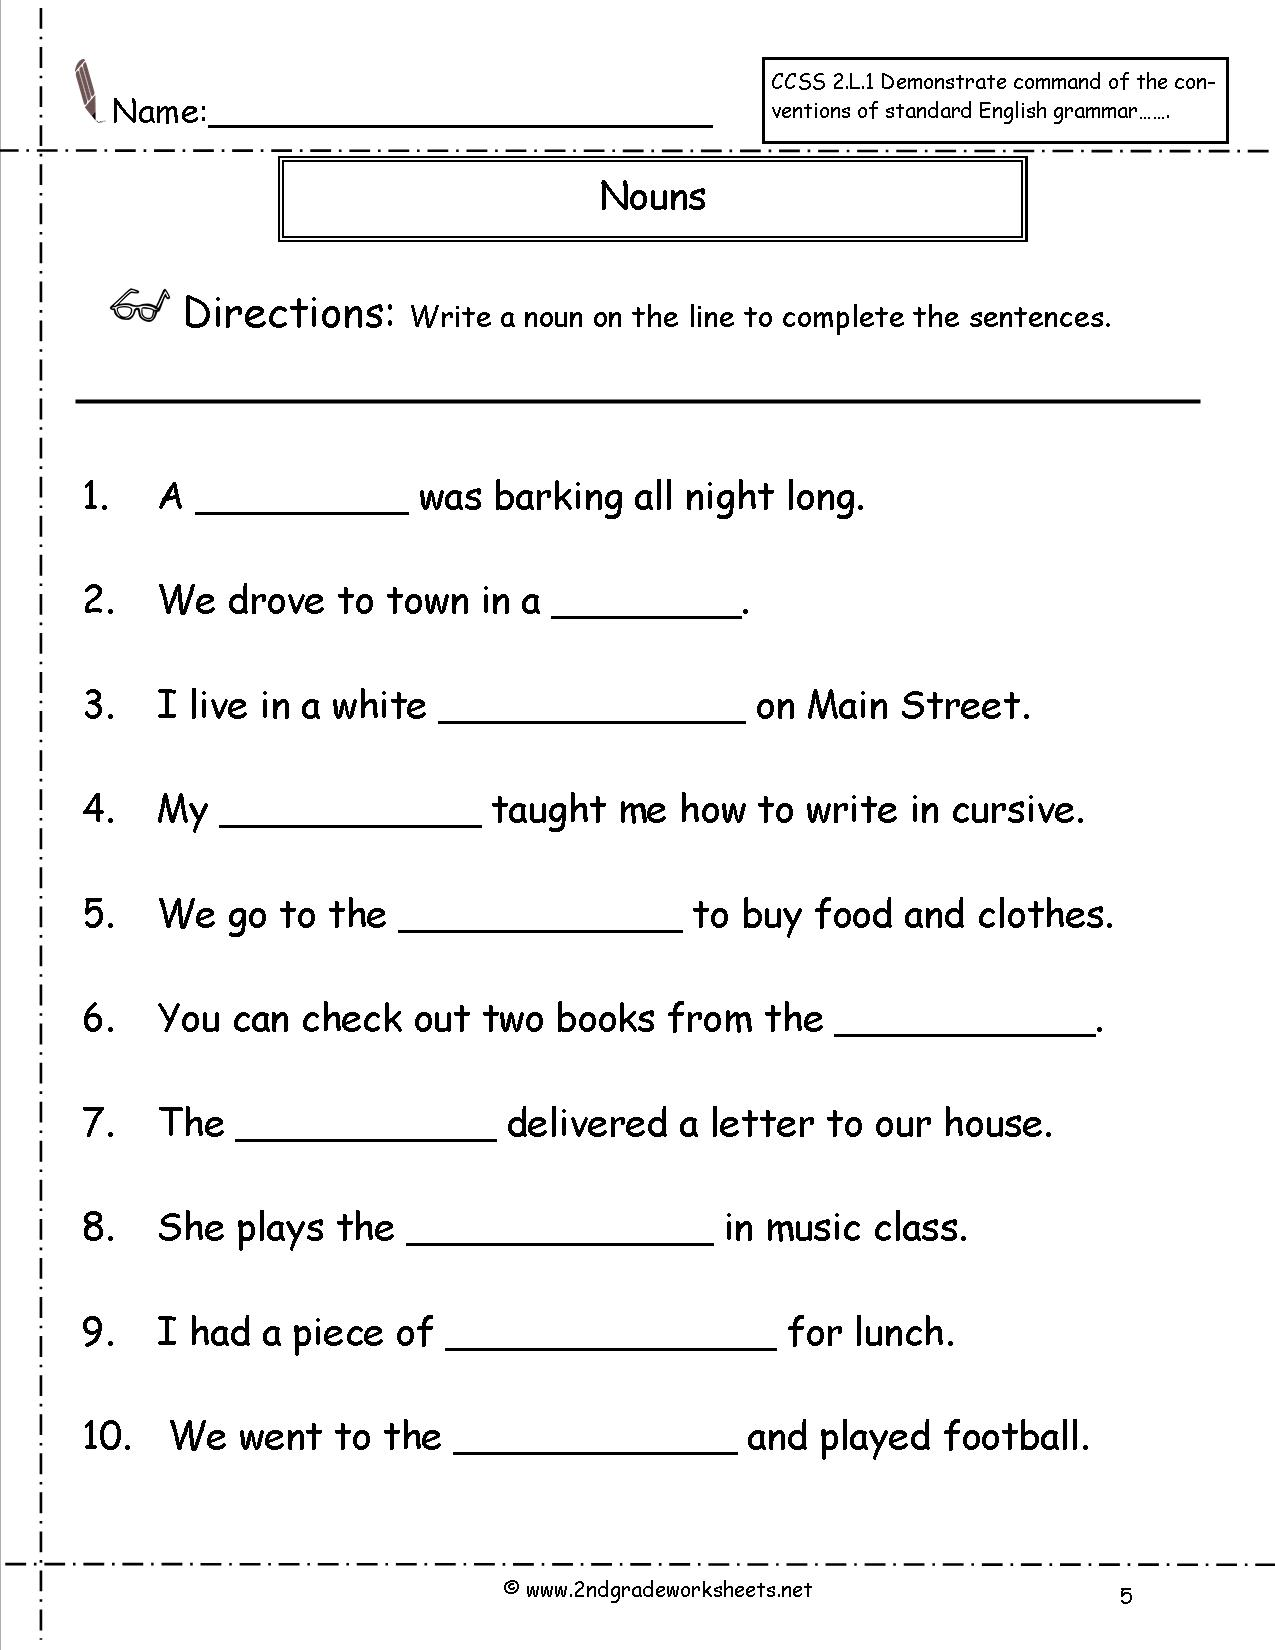 Noun Article Worksheets